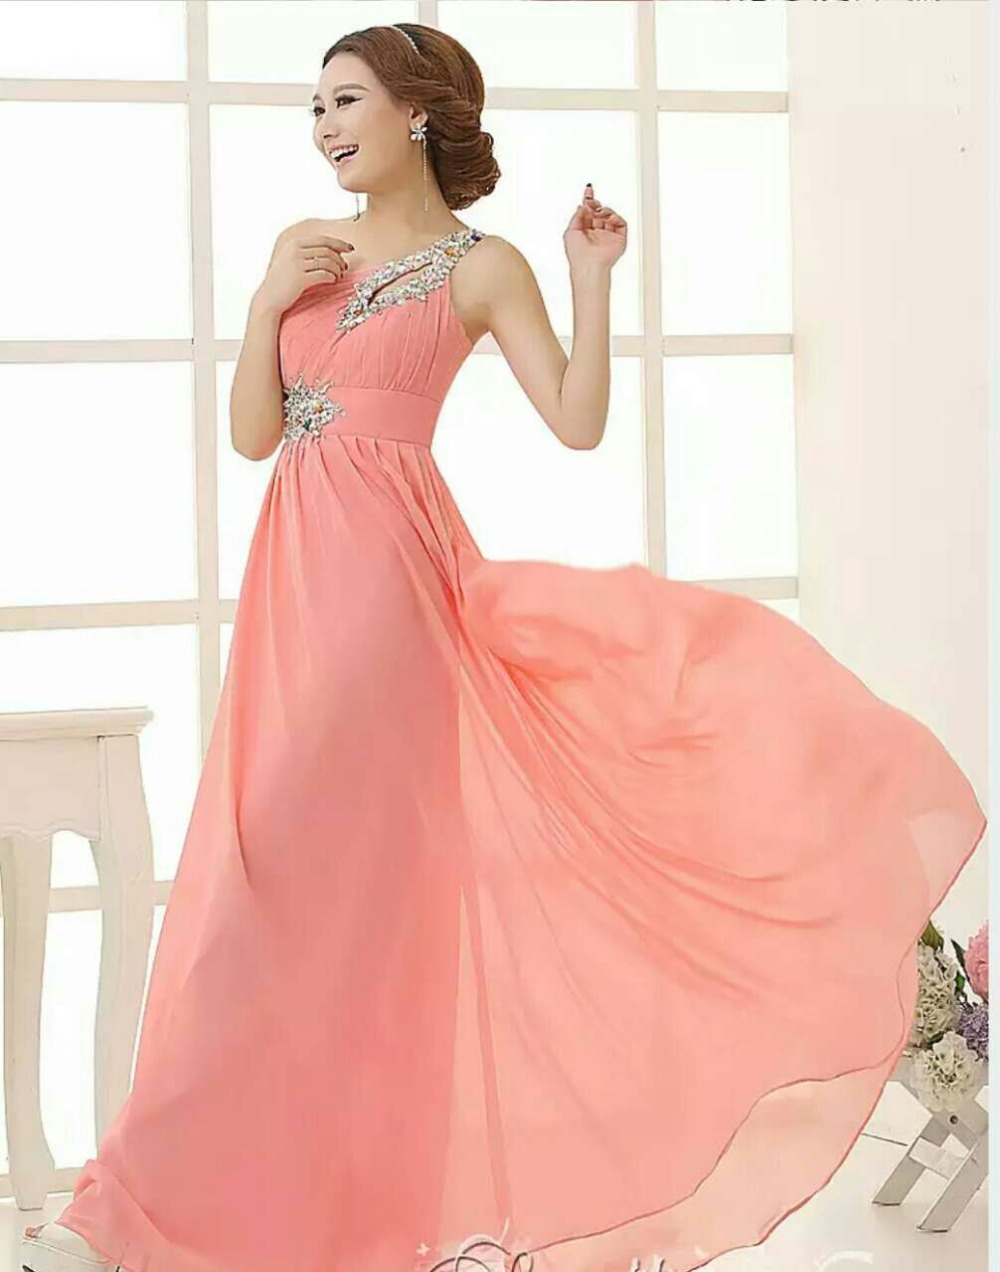 Beaded crystal long chiffon bridesmaid dress under 50 one shoulder beaded crystal long chiffon bridesmaid dress under 50 one shoulder bridesmaid gowns lace up party dress elegant 2017 in bridesmaid dresses from weddings ombrellifo Gallery